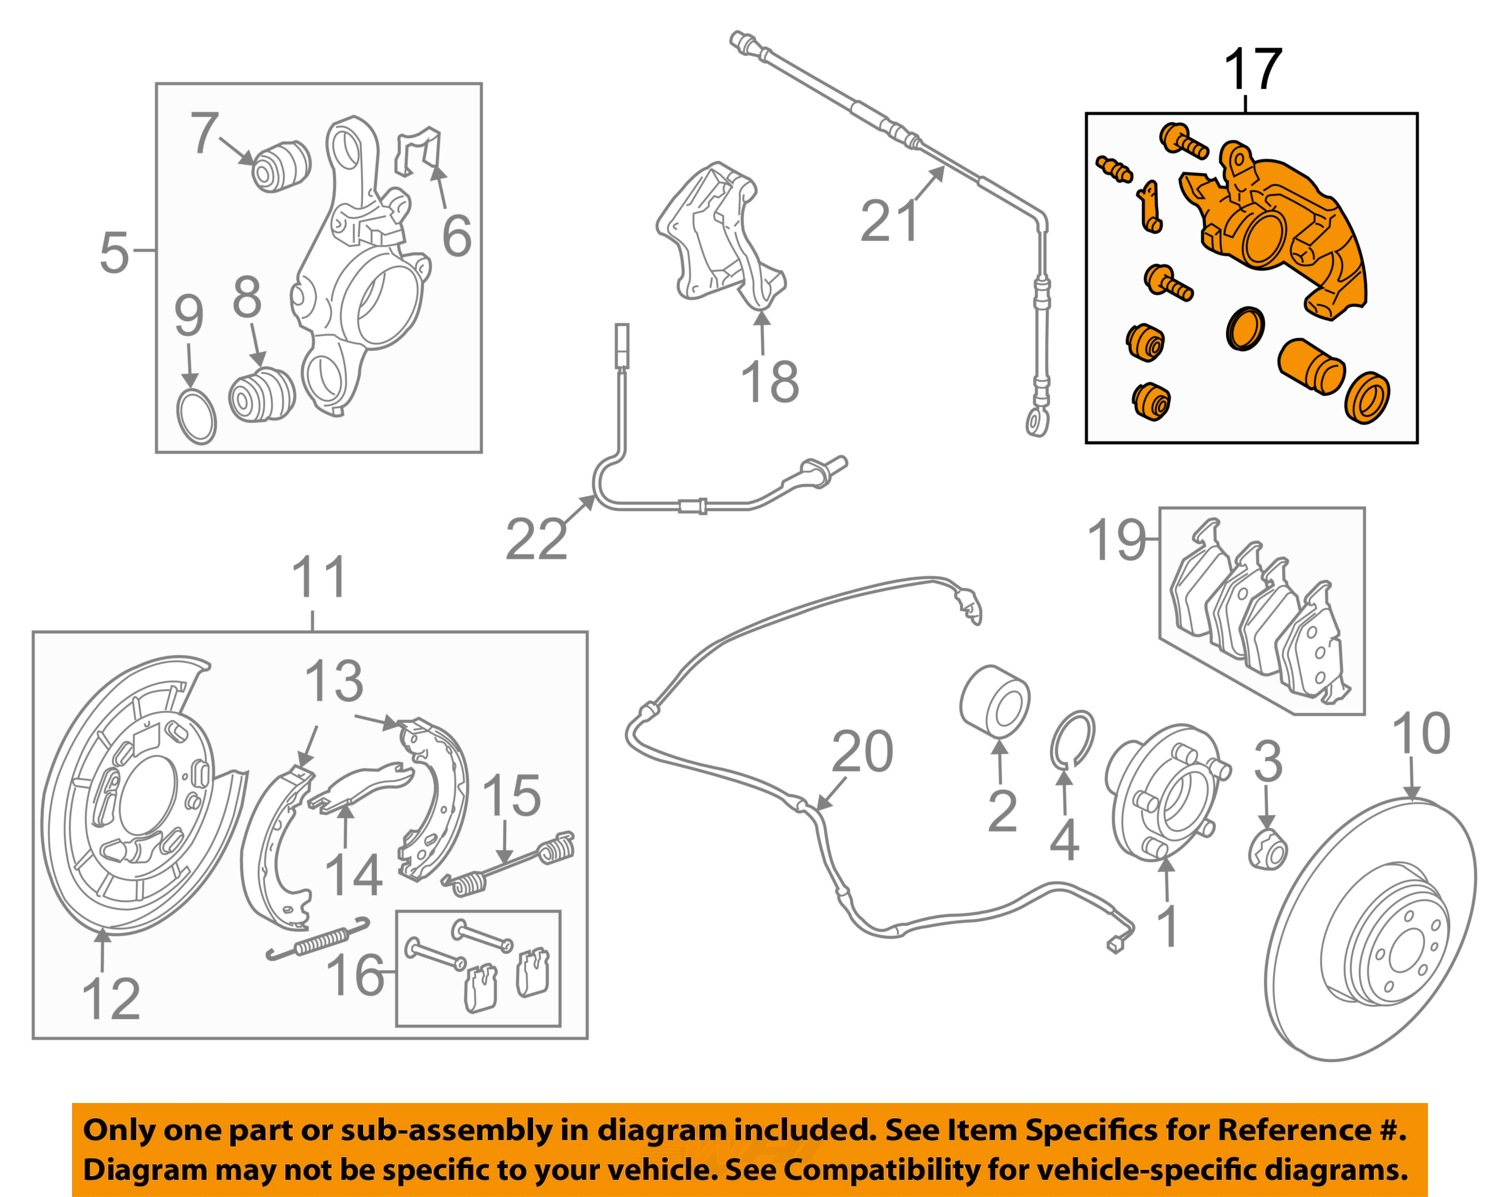 Land Rover Disc 2 Diagram Great Design Of Wiring Engine Diagrams Used Oem 2005 2009 Lr3 Rear Brake Caliper Discovery 1